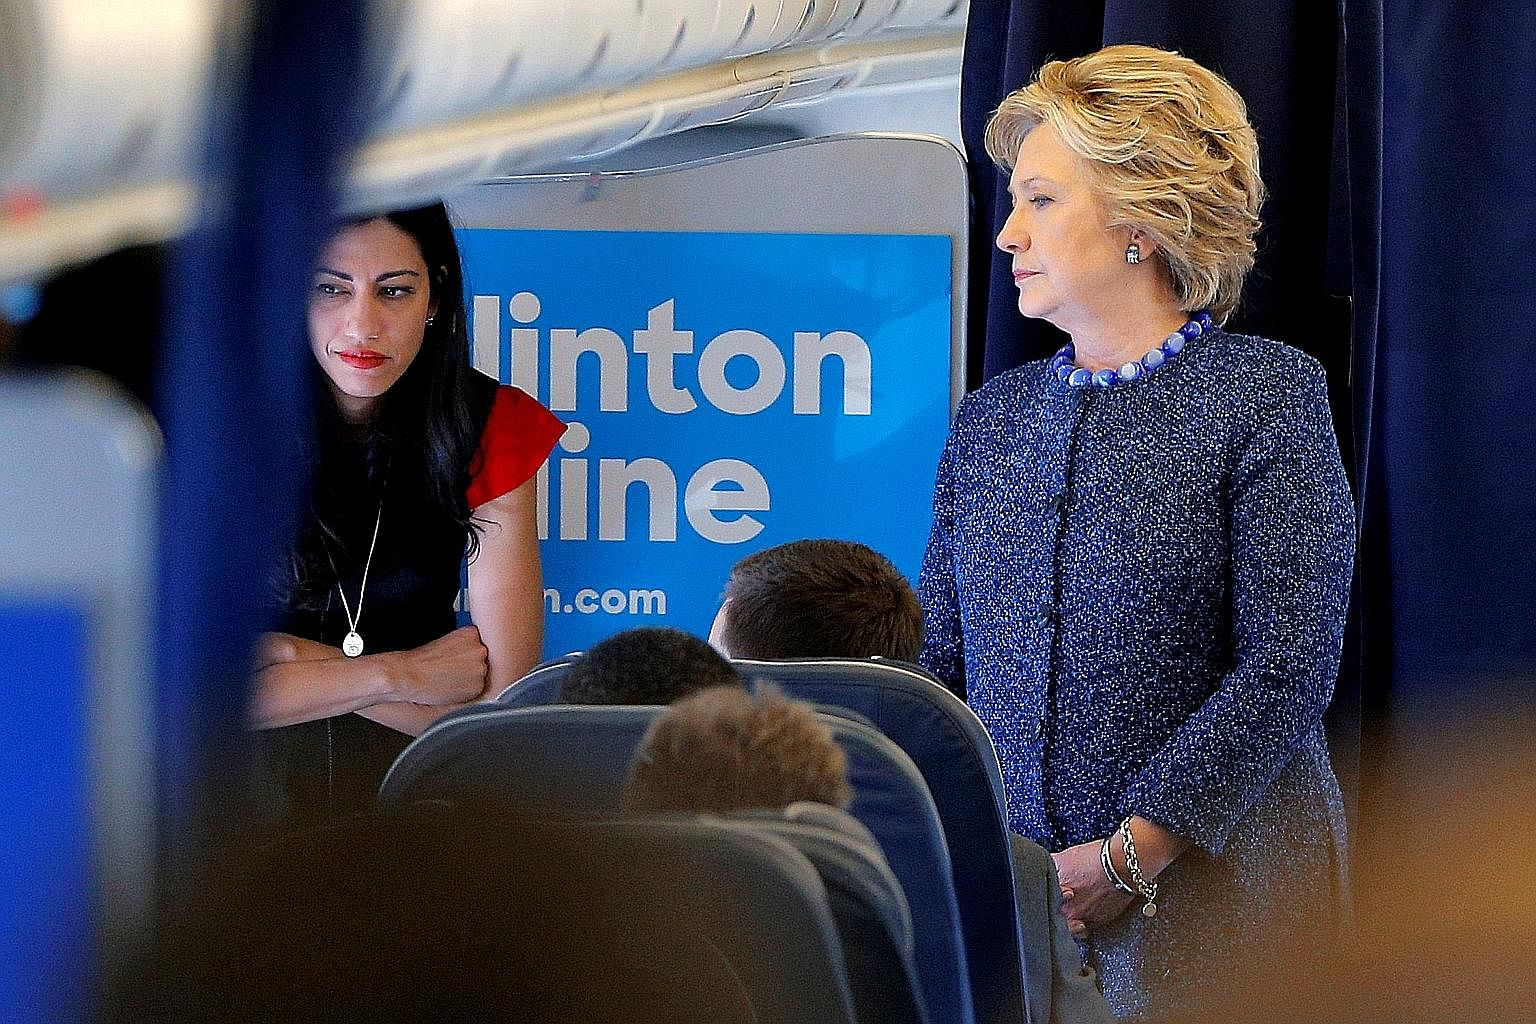 Mrs Clinton with her aide Huma Abedin onboard her campaign plane on Friday. The e-mail that triggered the current scandal surfaced because of investigations into sexual messages allegedly sent to a minor by Ms Abedin's husband, former congressman Ant